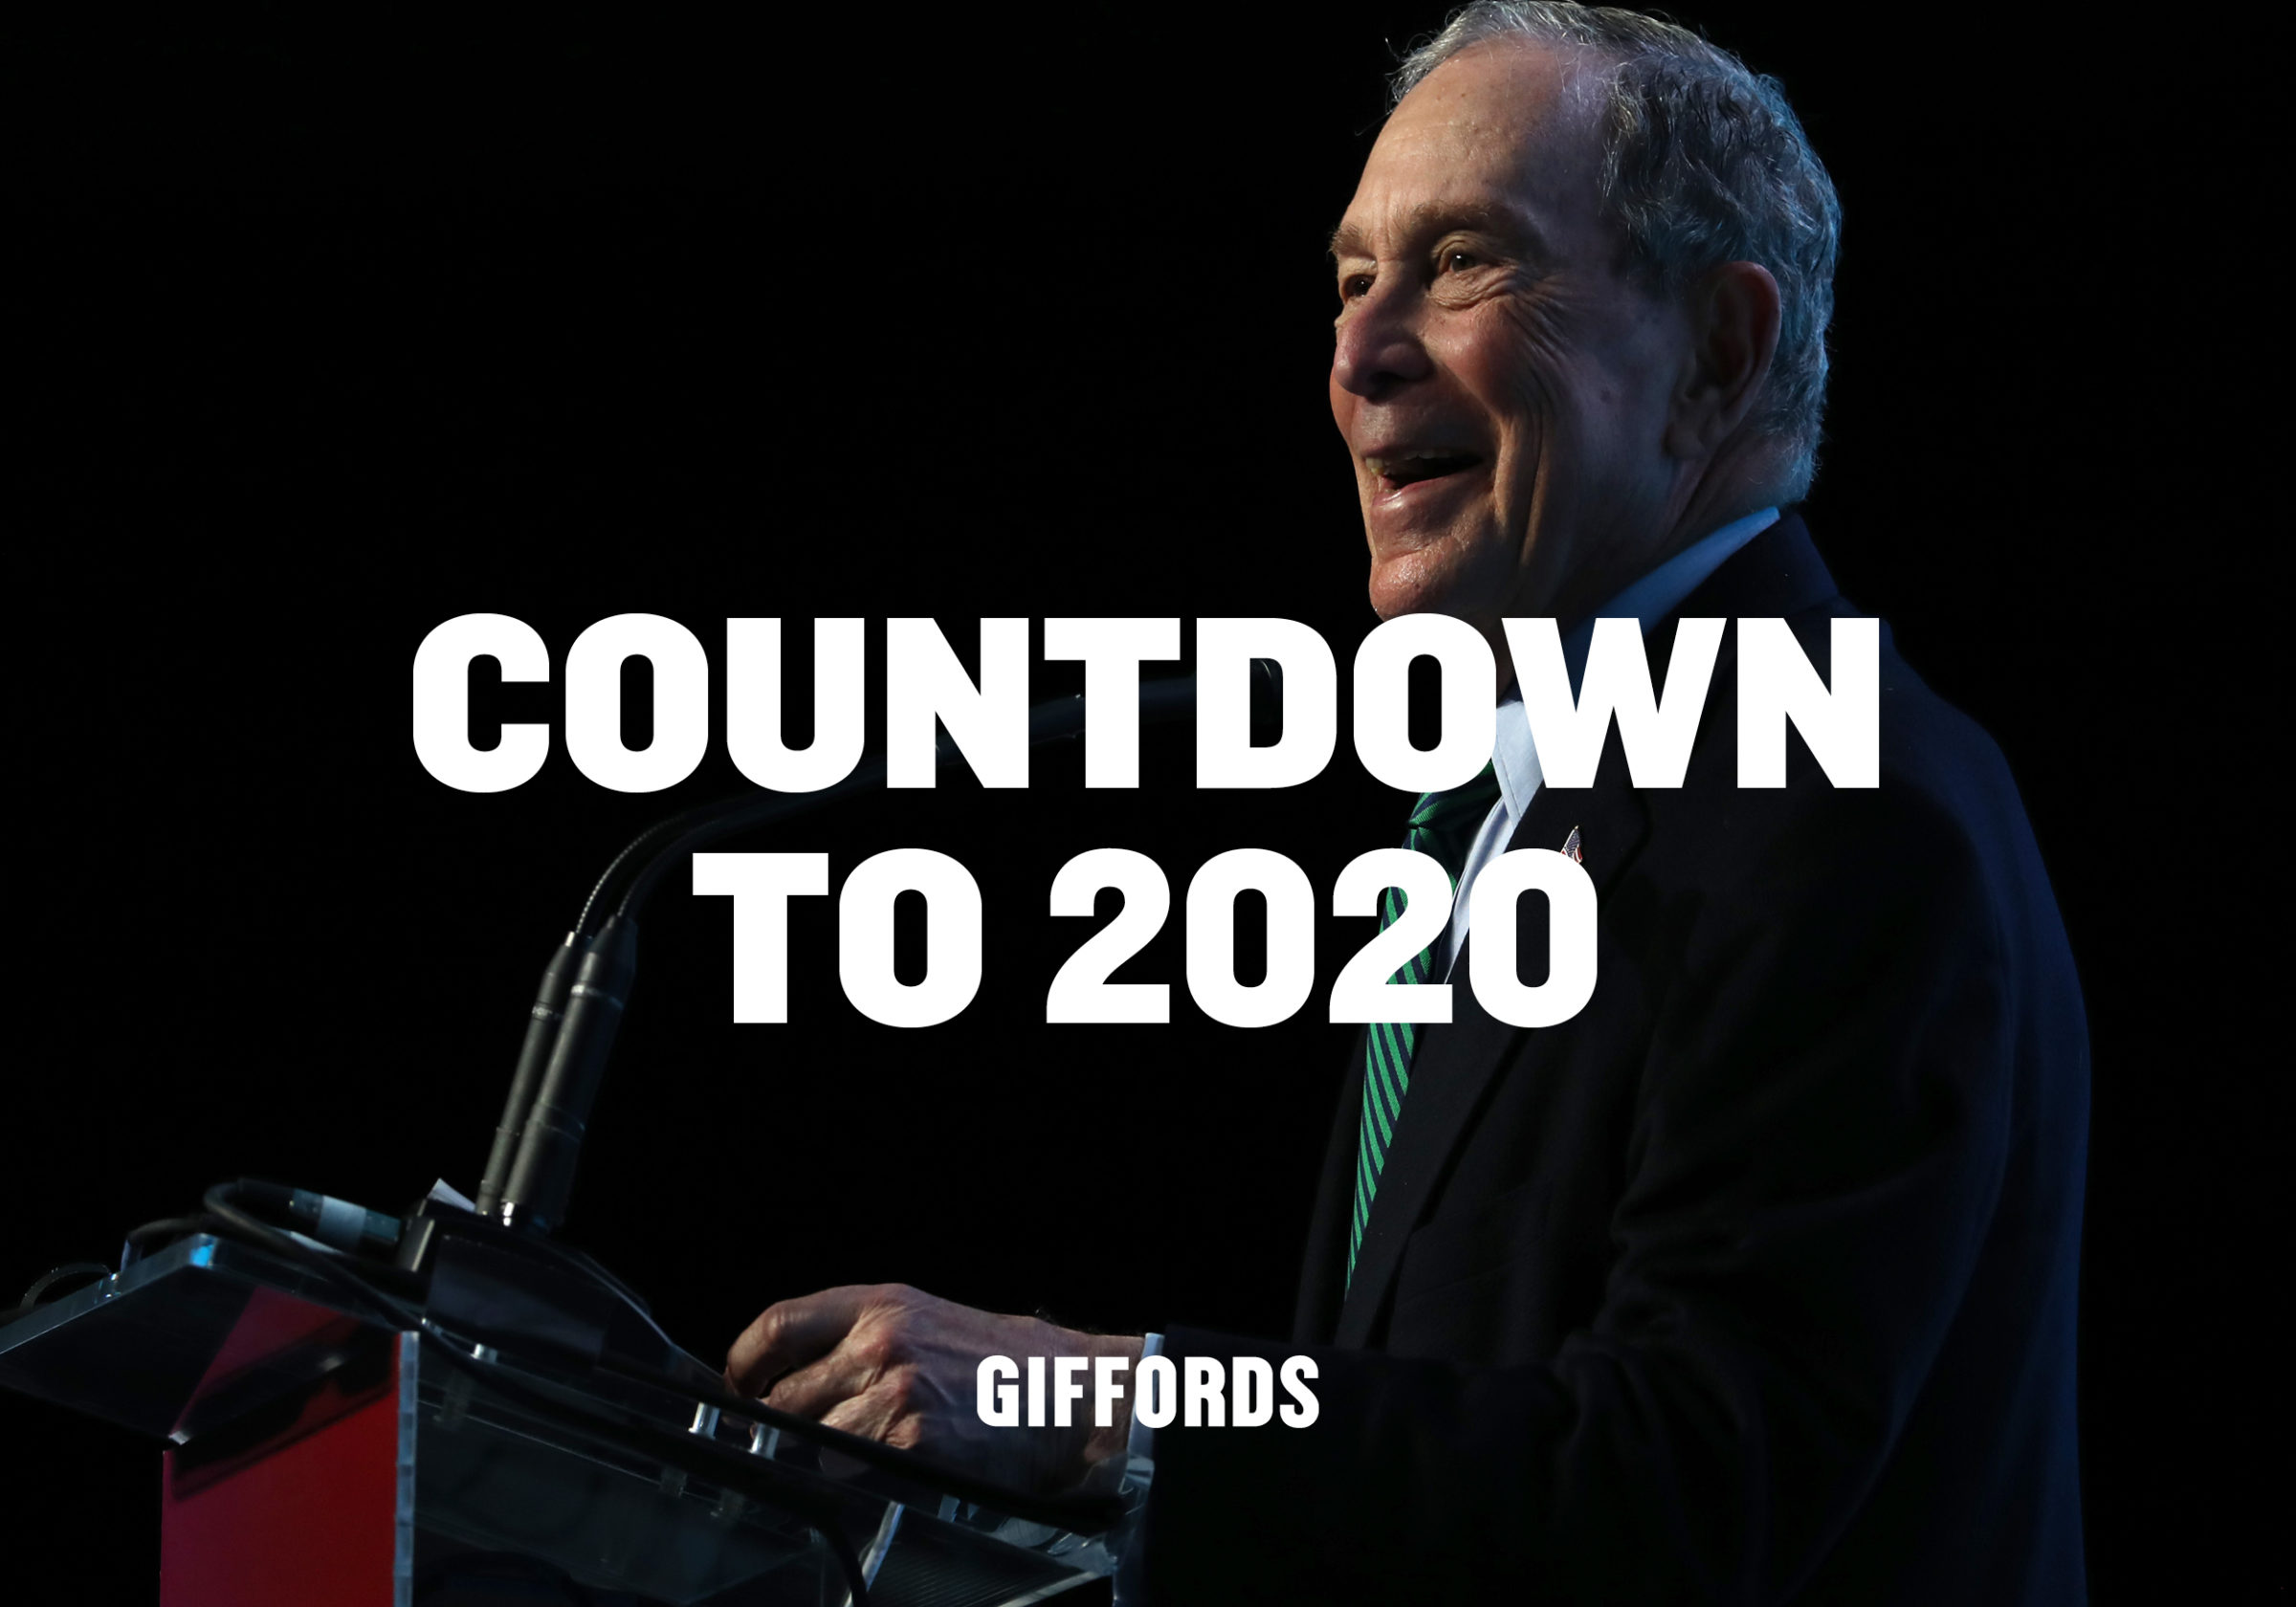 19.06-SOC-2020-Candidates-Blog-visuals_Bloomberg (1)